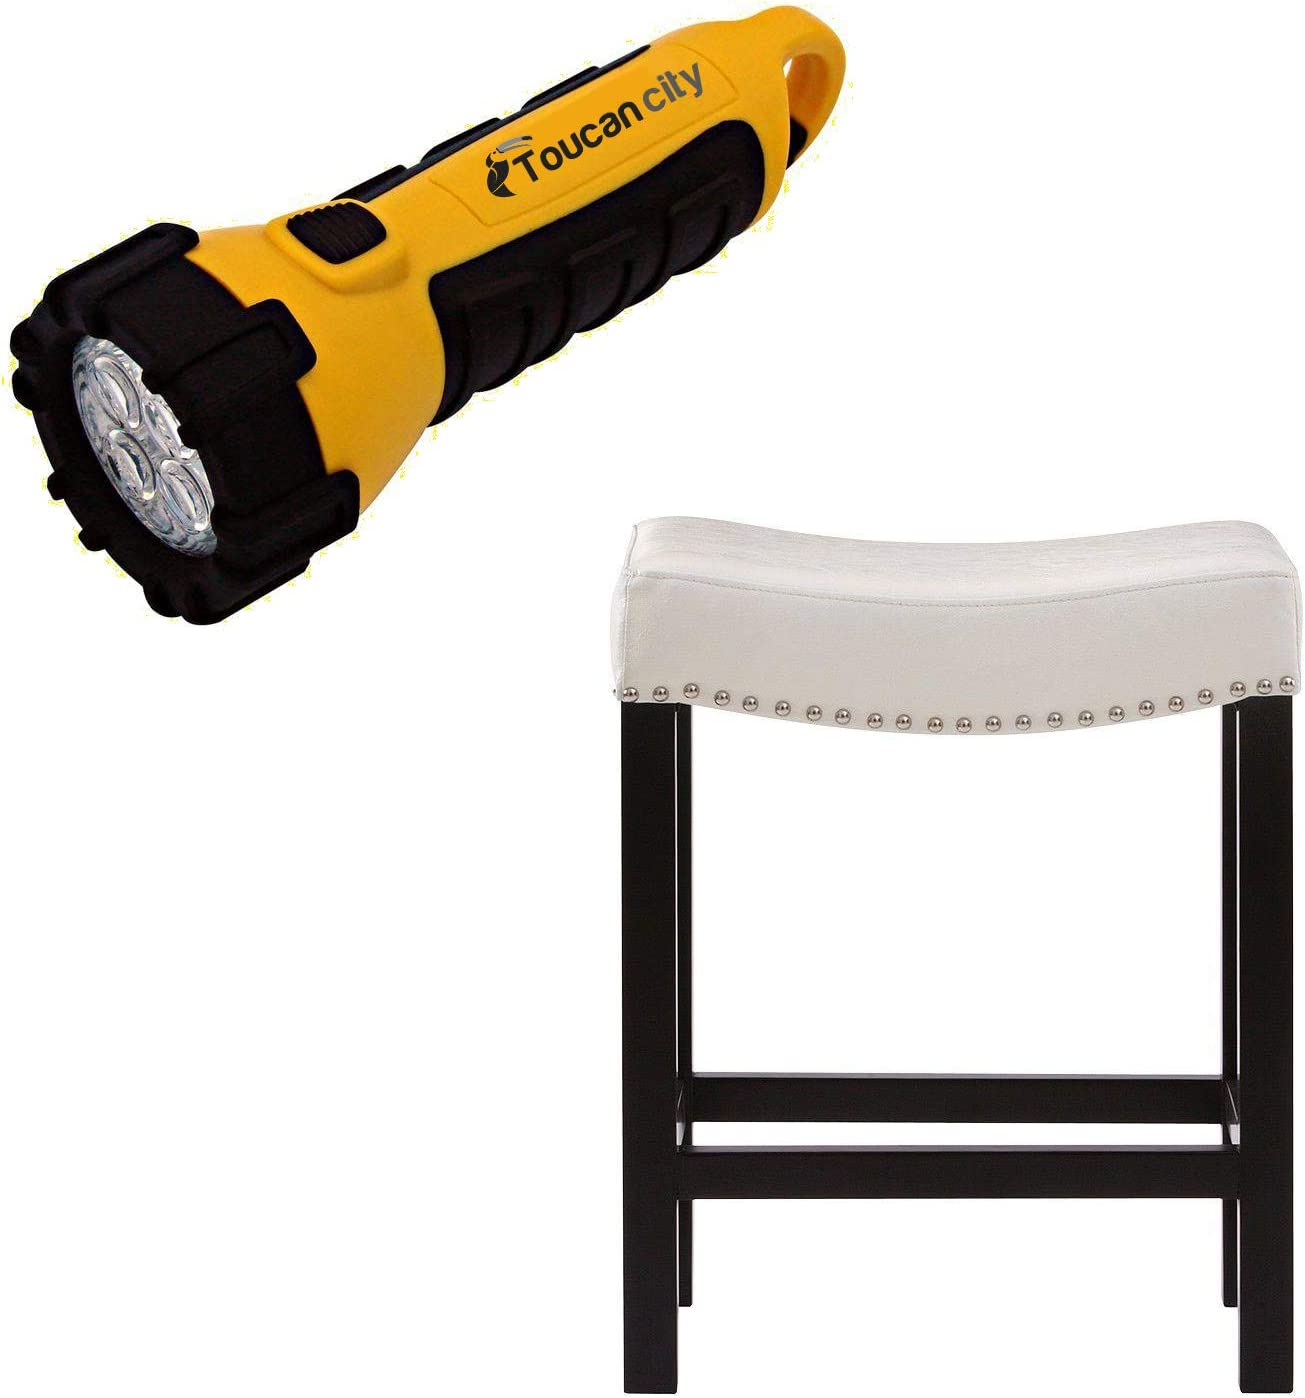 Toucan City LED Flashlight and Home Decorators Collection 24 in. Ivory Cushioned Curved Nailhead Counter Stool in Black 5376700400